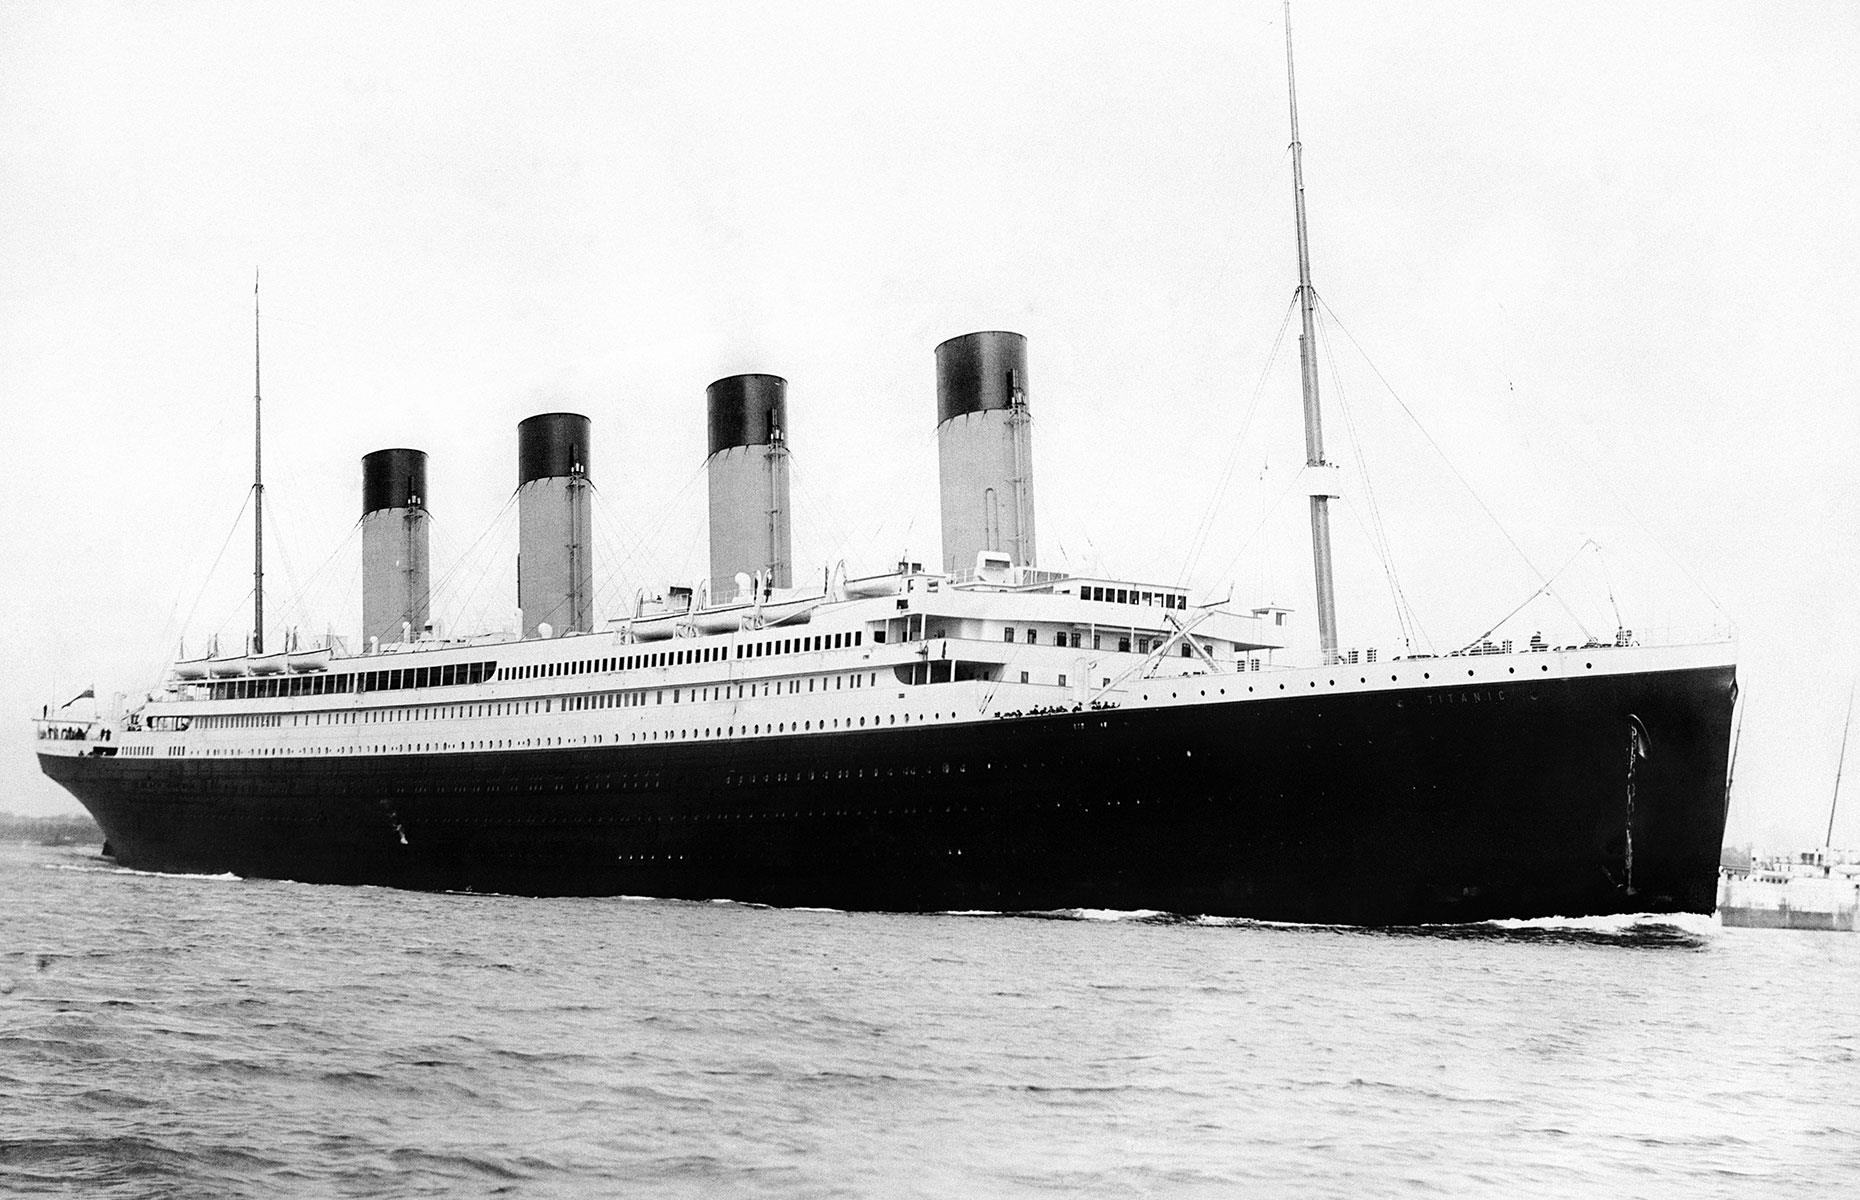 Slide 1 of 46: When the RMS Titanic leftSouthampton, Englandon 10April 1912 bound for New York, she was the largest ocean liner afloat and thoughtto be unsinkable. More than a ship, the Titanic was a symbolof the wealth, extravaganttastes and engineering skillof the Edwardian age. But the liner'scollision with an iceberg in the North Atlantic on 14 Apriland theloss of over 1,500 livesmarked the end of an era. Today, 108 years on,the Titanic's story continues to captivate. Here, using beautiful period images,welook at what life was really like on the most famous and ill-fatedvoyage in history.